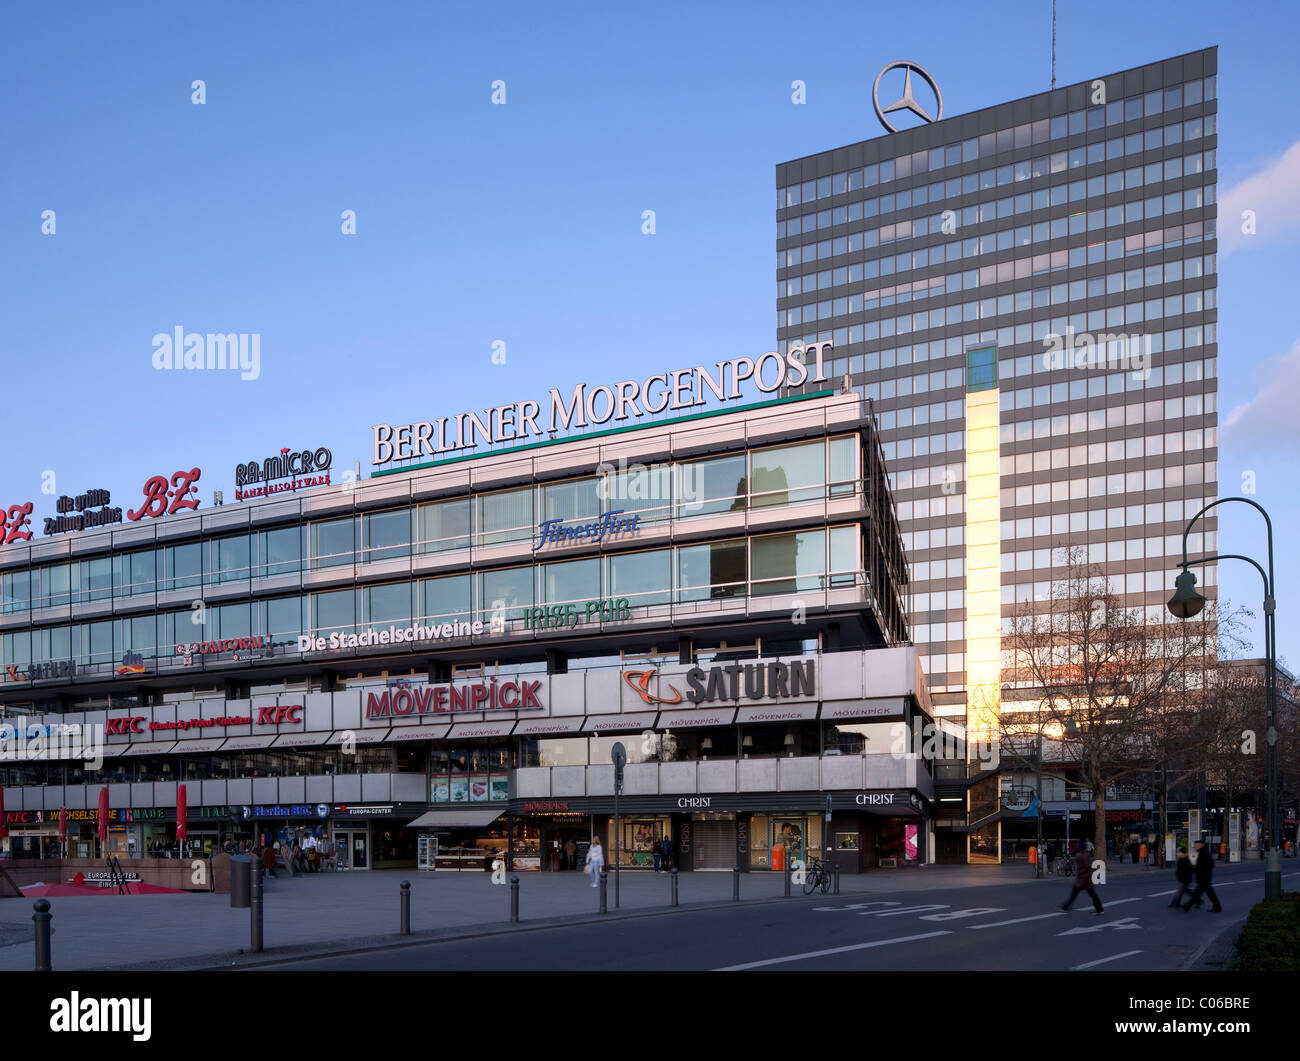 europa center shopping mall charlottenburg district berlin stock photo royalty free image. Black Bedroom Furniture Sets. Home Design Ideas